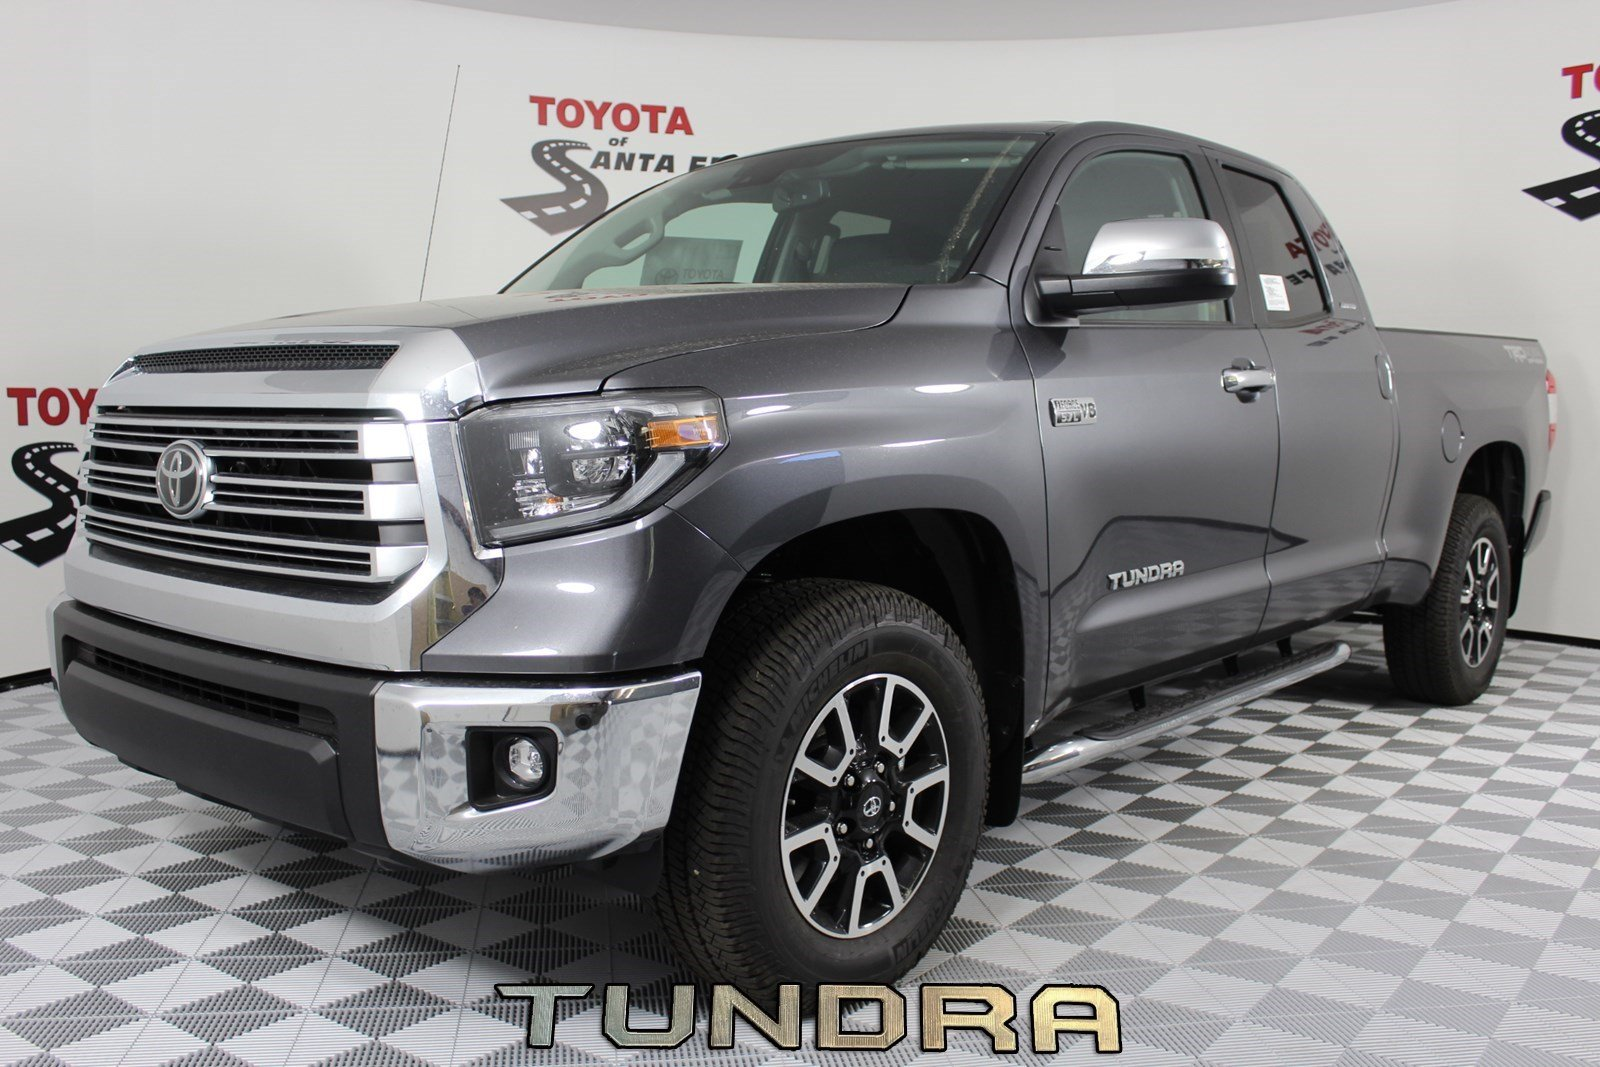 New 2019 Toyota Tundra Limited Double Cab 6 5 Bed 5 7l In Santa Fe